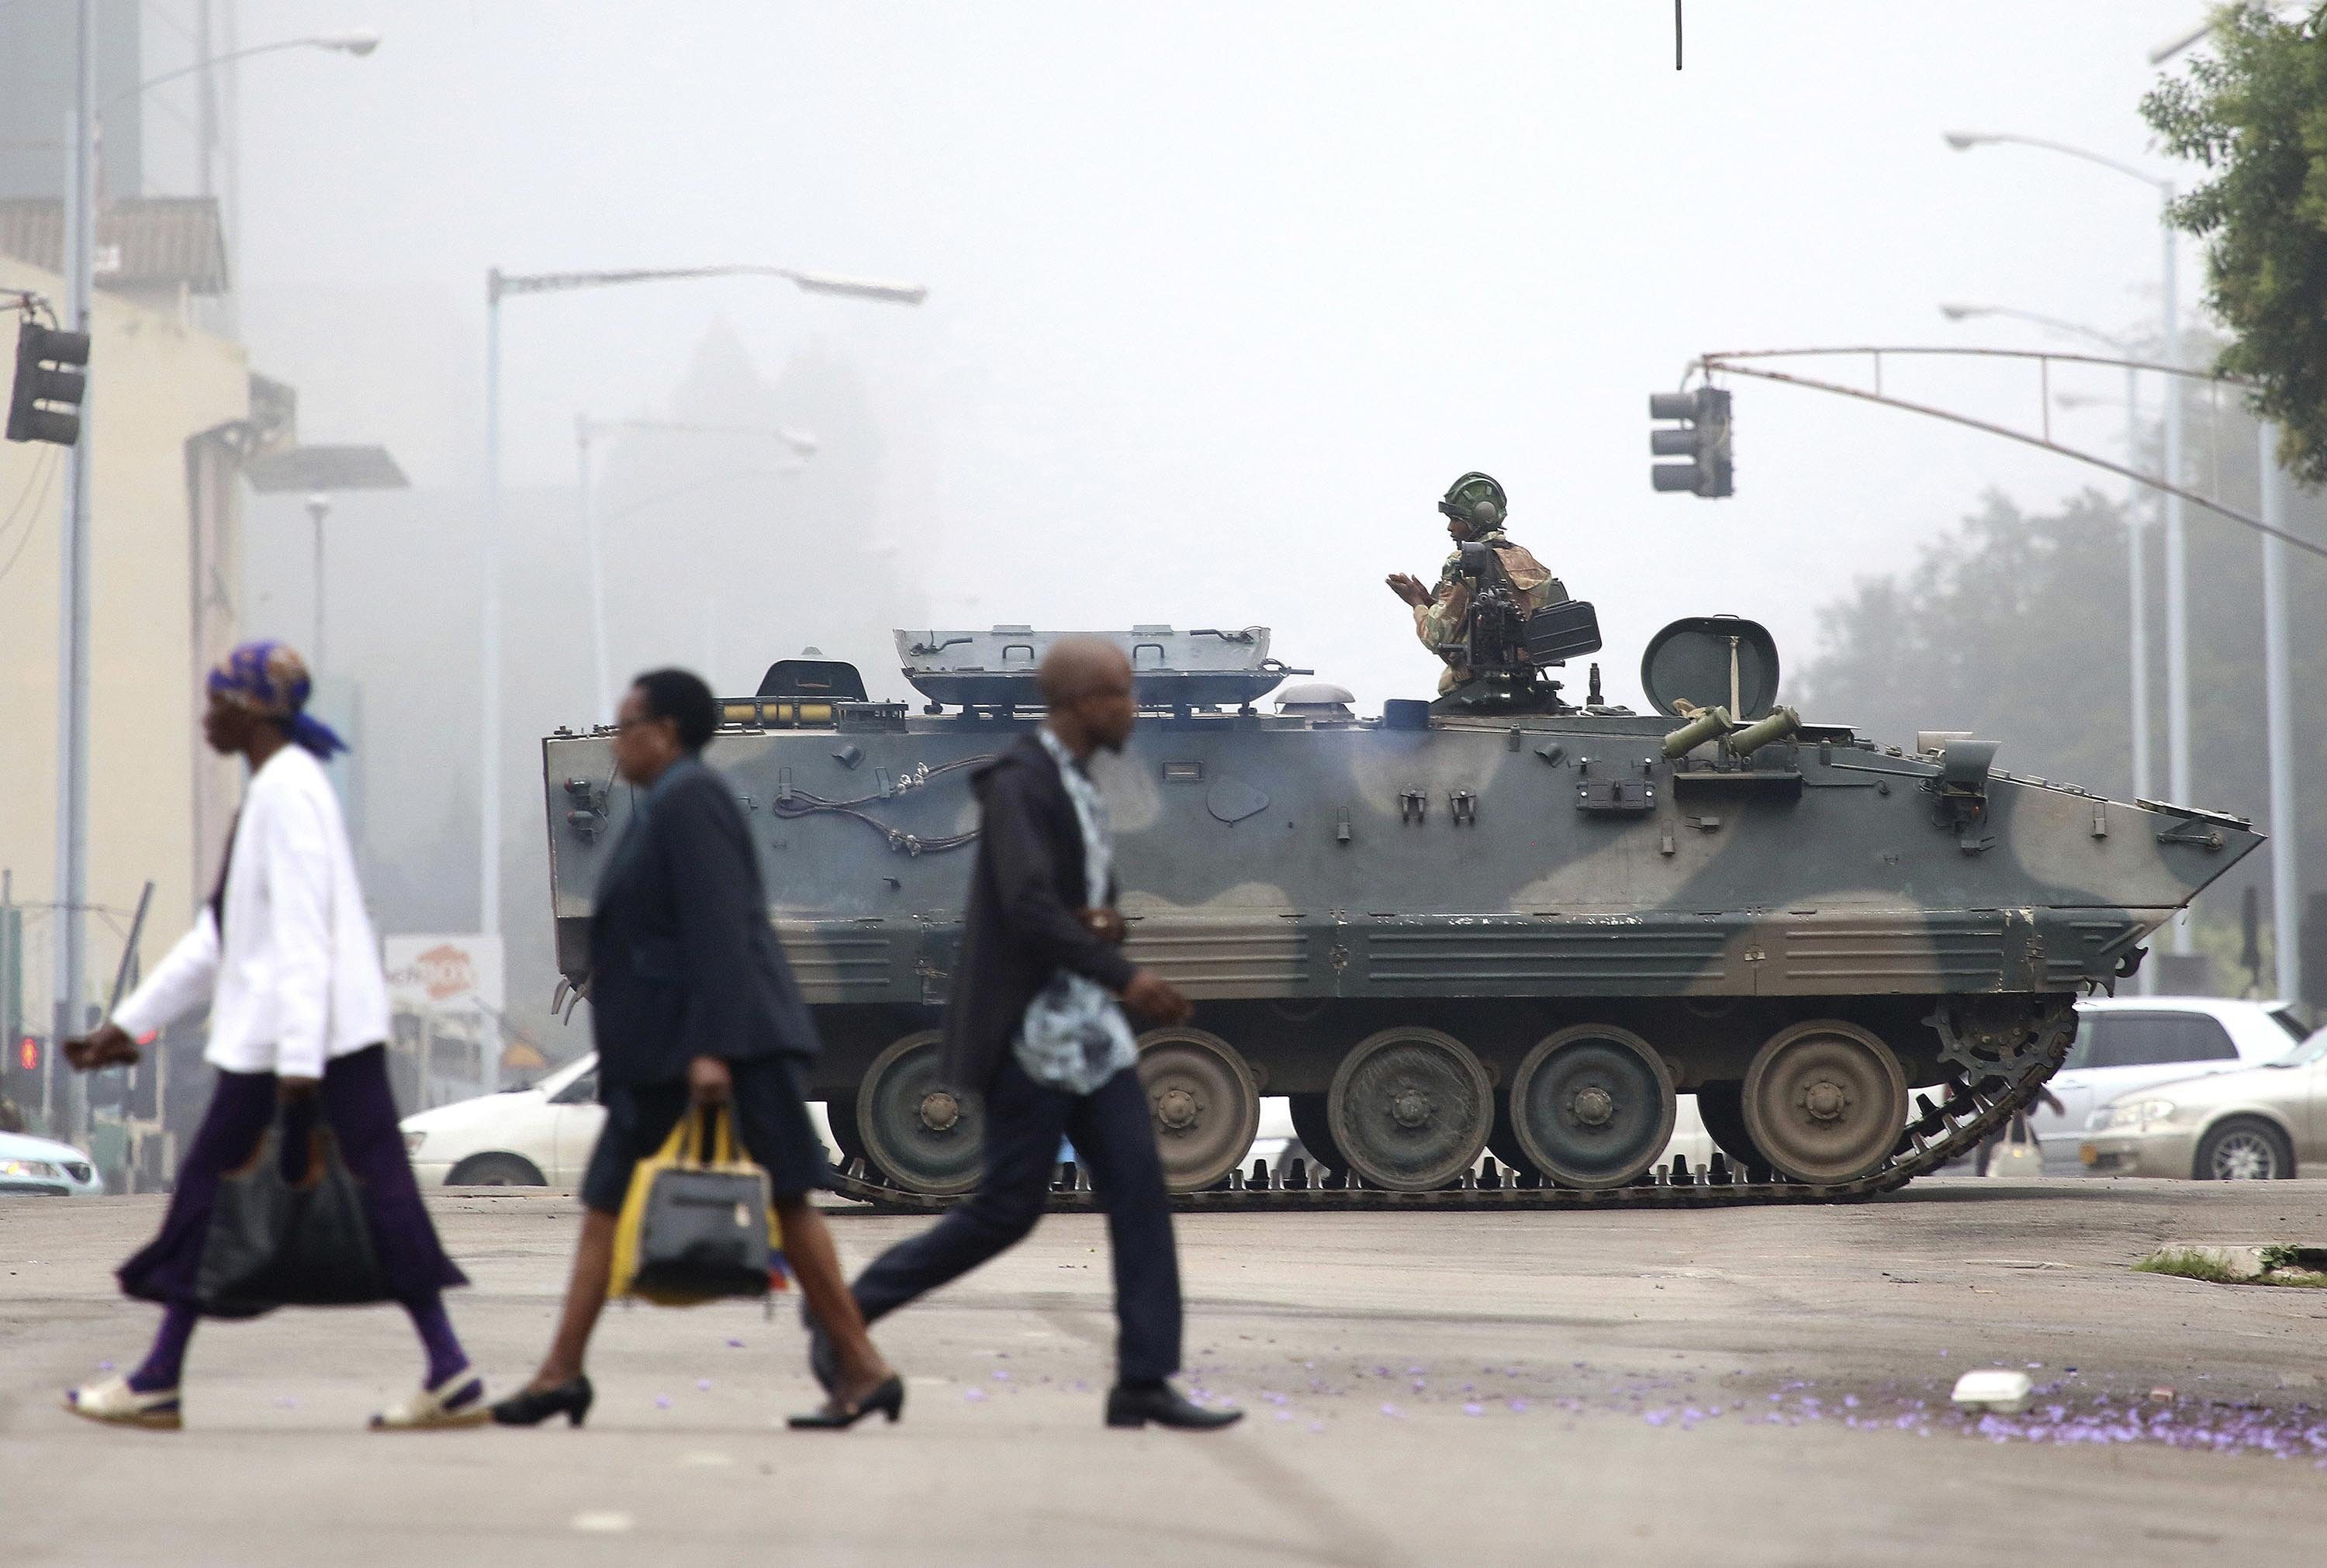 **This image is for use with this specific article only**  A tank patrols a street in Harare on Wednesday, November 15, after an apparent coup in Zimbabwe. In a dramatic televised statement, an army spokesman denied that a military takeover was...